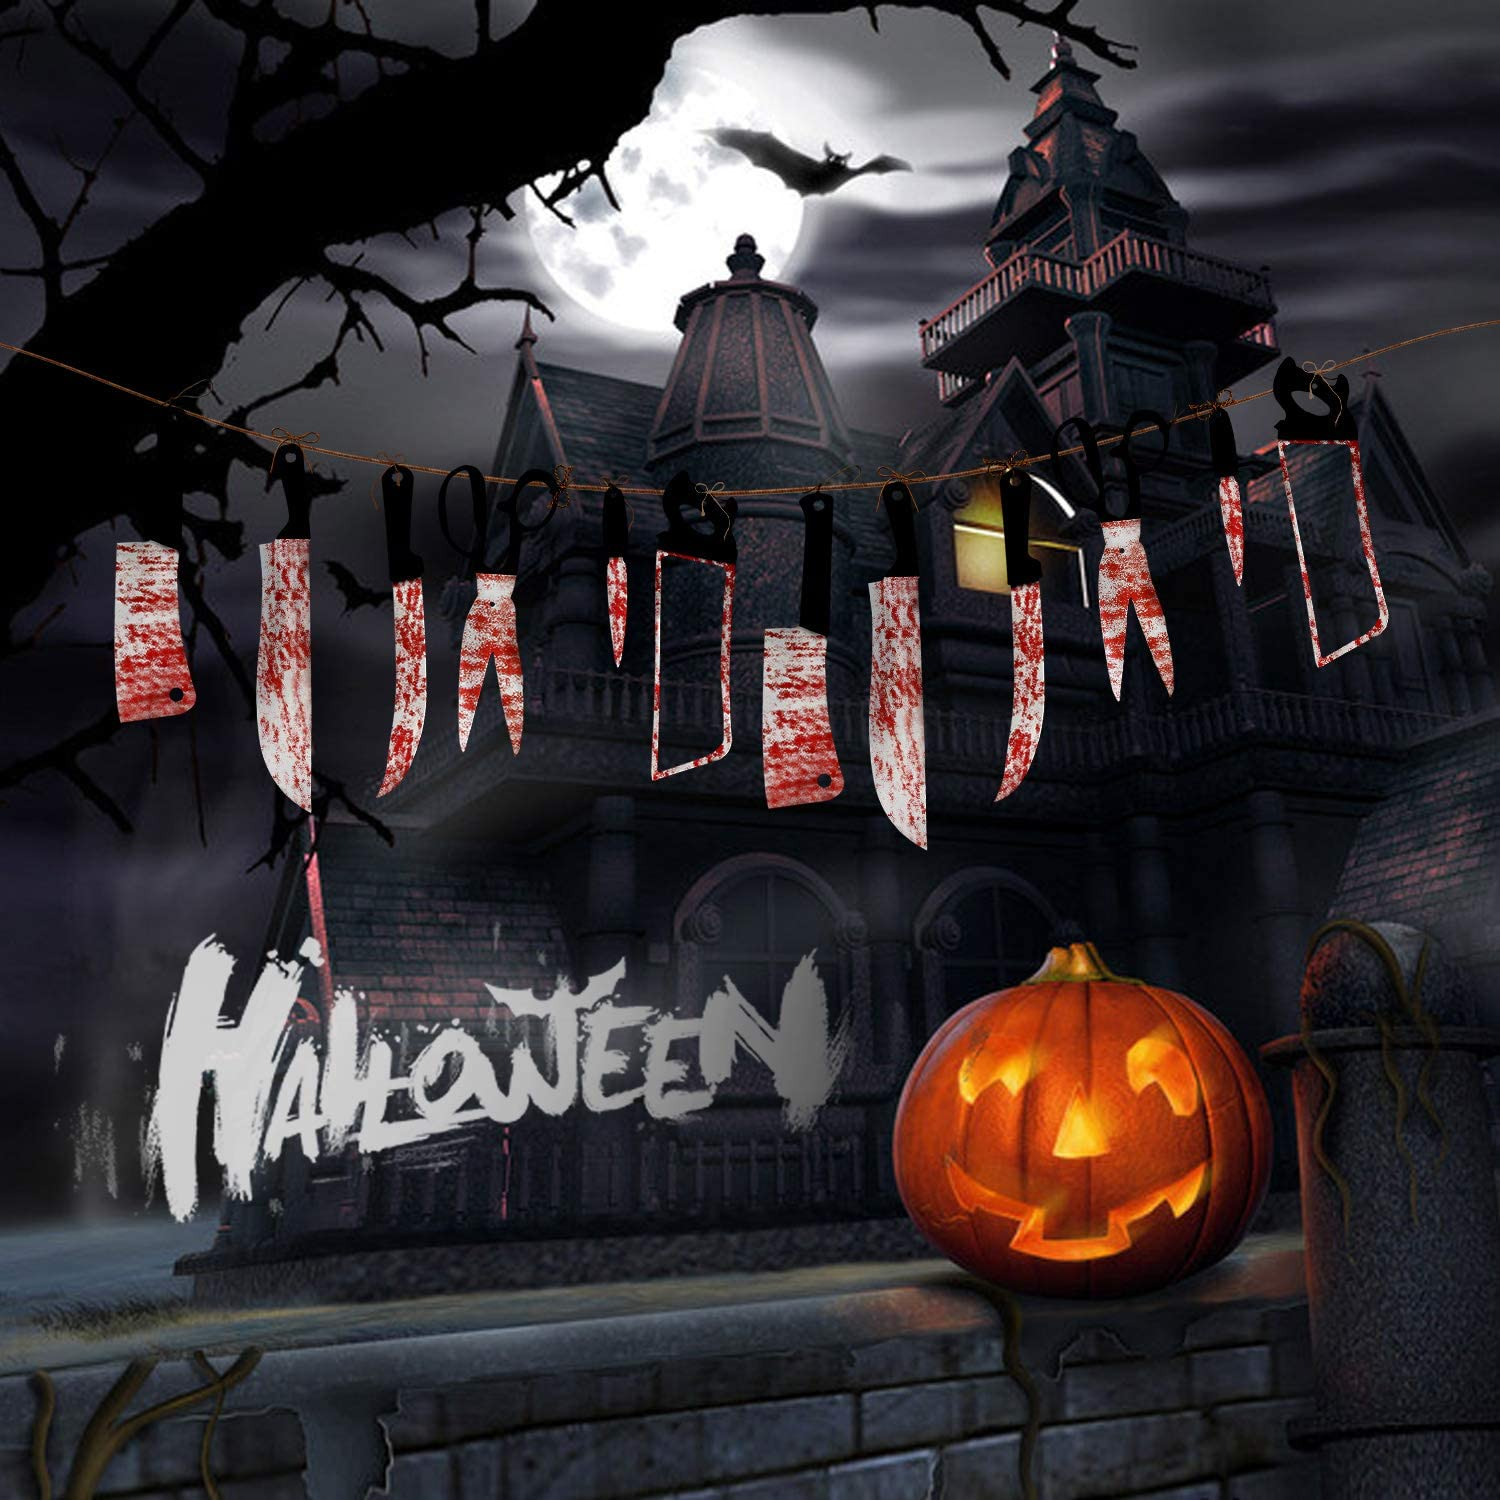 Ideal for Halloween Zombie Vampire Party Decorations Supplies Innens Halloween Decorations 2 Set Bloody Horror Weapon Banner